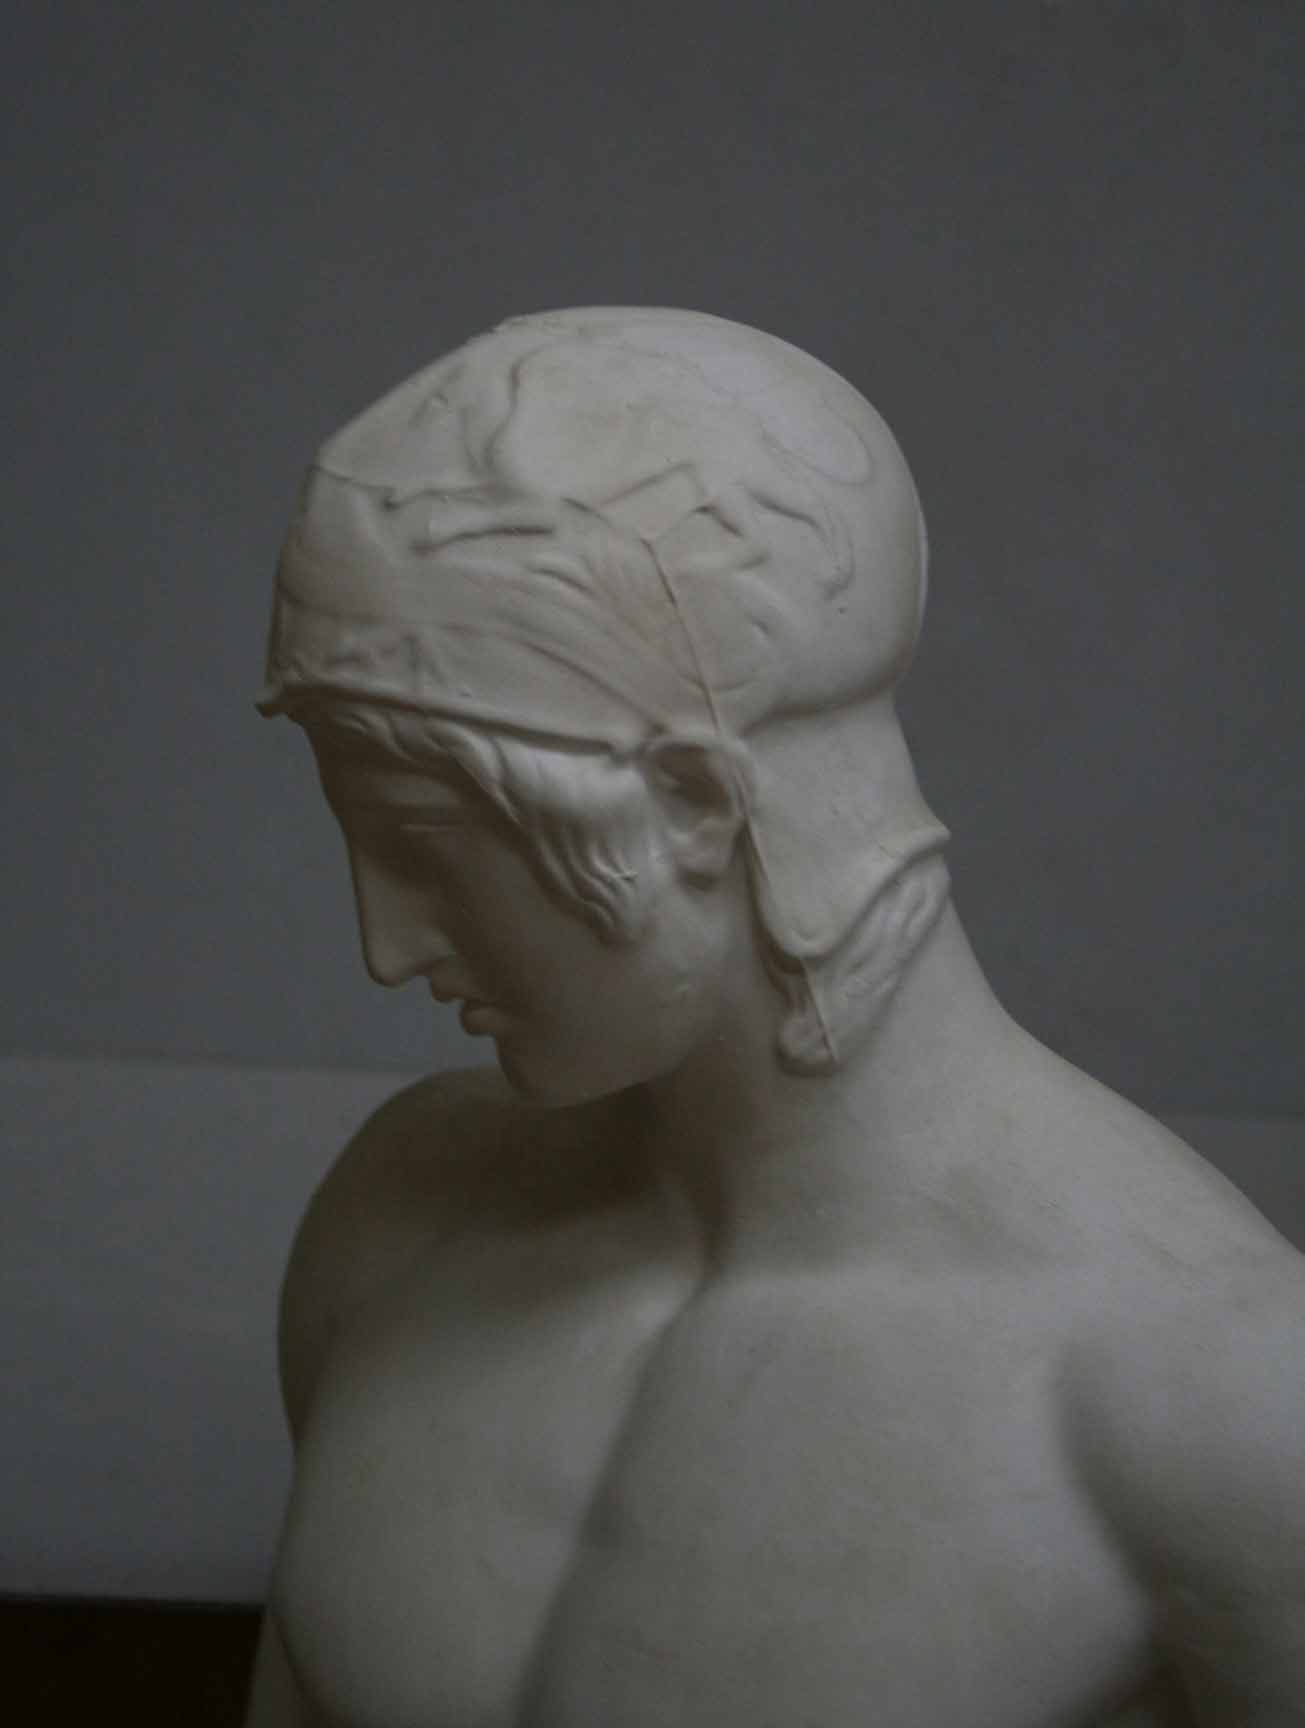 photo of plaster cast of sculpture of nude male without arms and wearing a helmet on a gray background